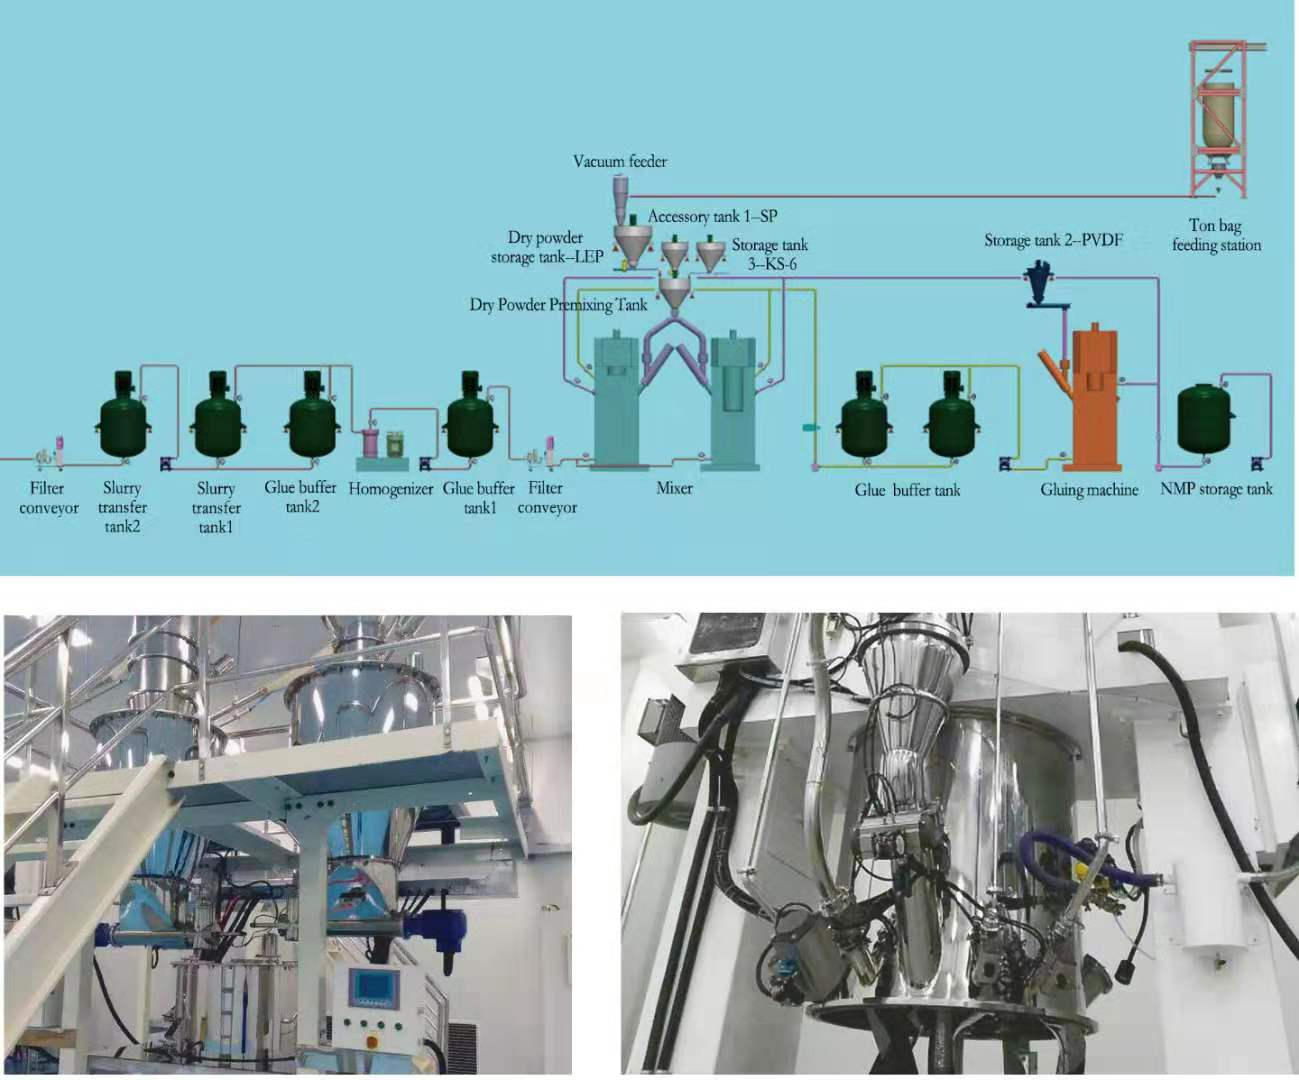 lithium-ion battery automatic batching system